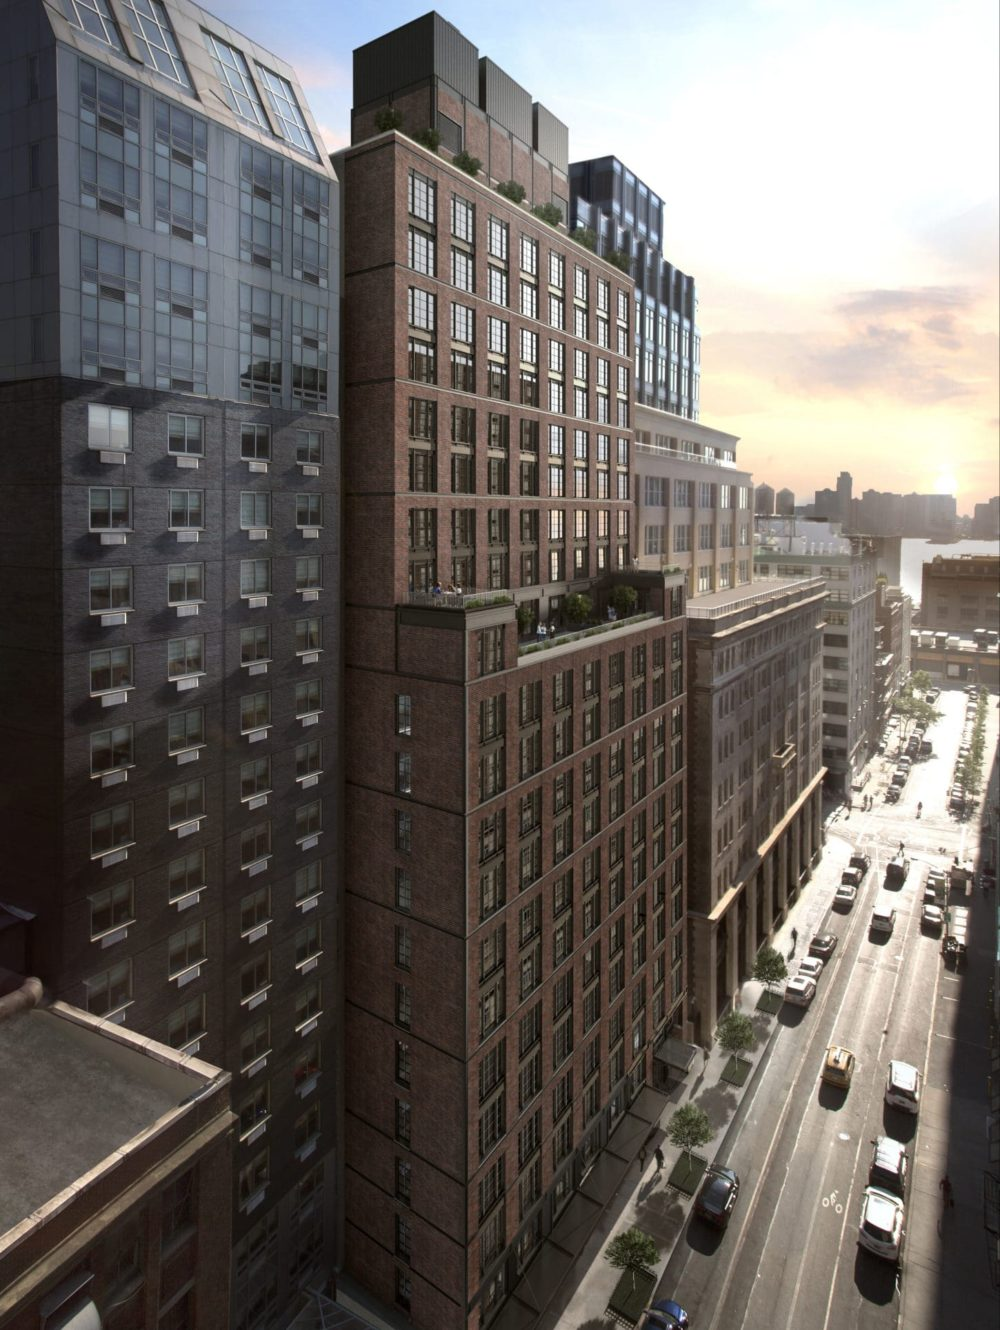 Exterior aerial view of 70 Charlton condominiums with New York City sunset in the background.